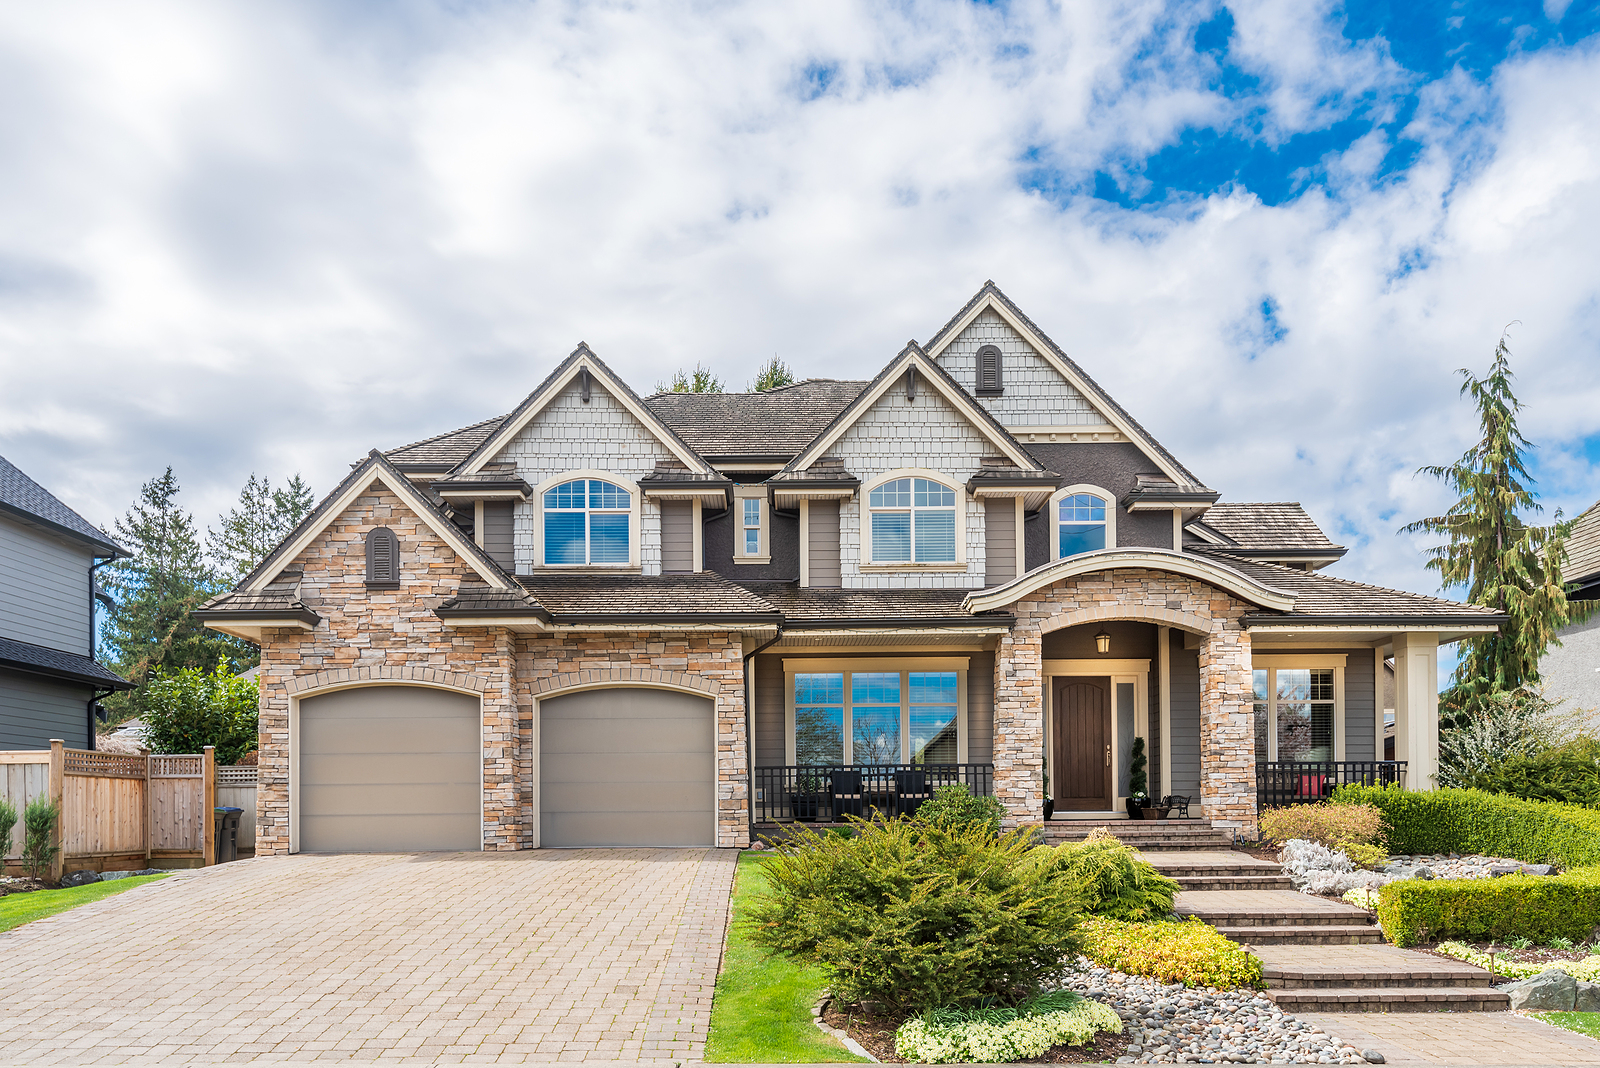 Beautiful-Exterior-of-Newly-Built-Luxury-Home-with-Two-Garage-Doors